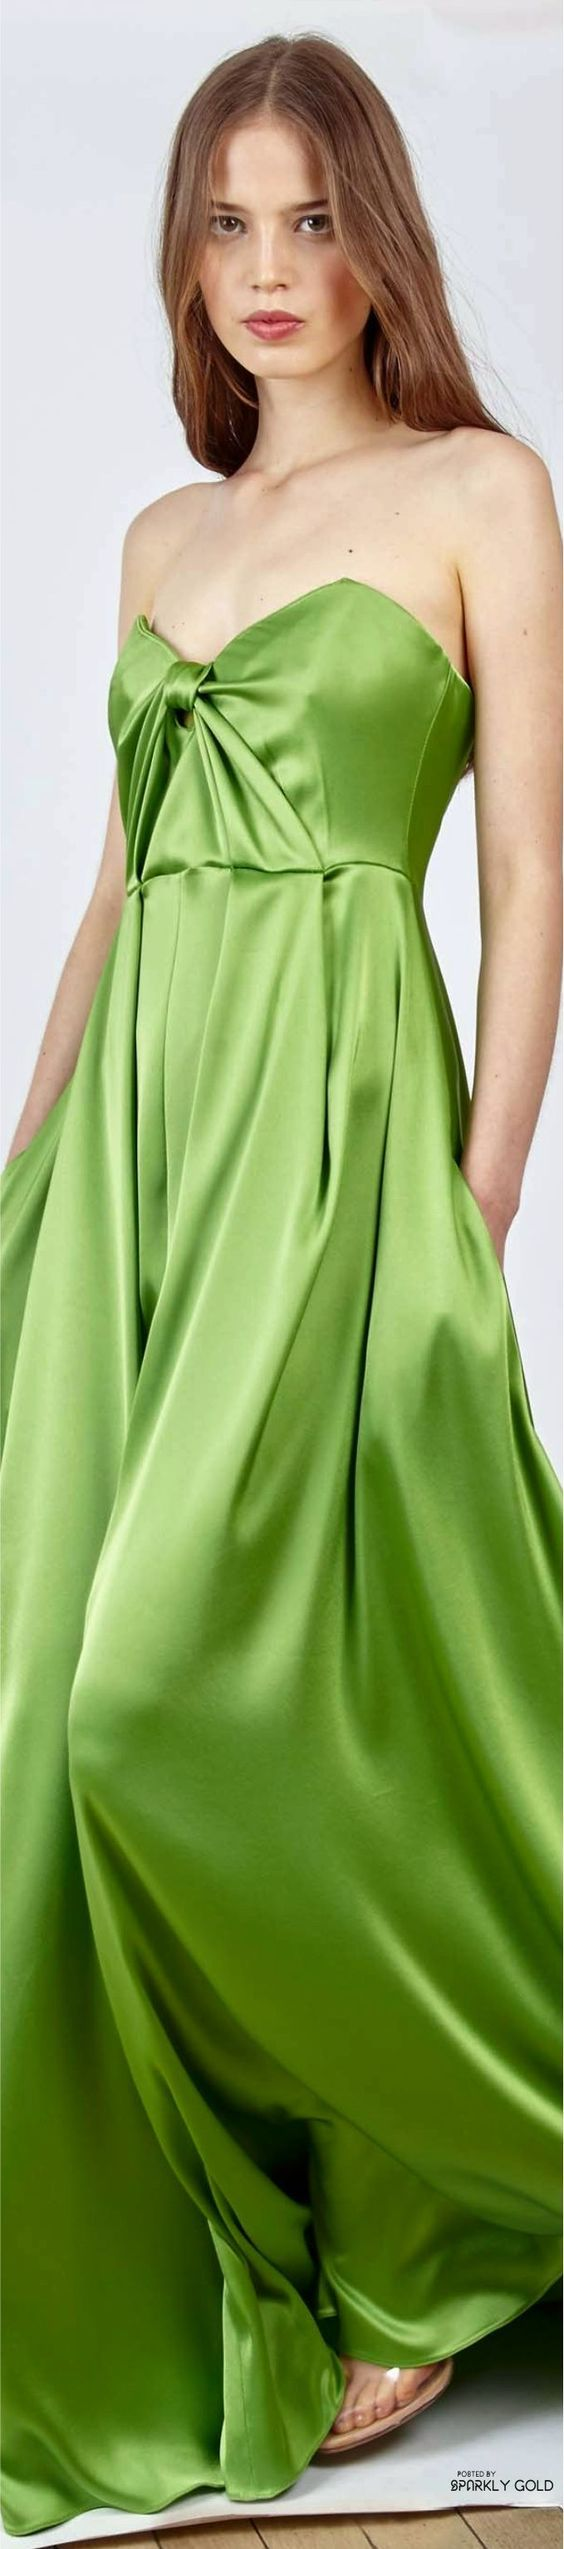 Alexis Mabille Resort 2017 green dress @roressclothes closet ideas #women fashion outfit #clothing style apparel